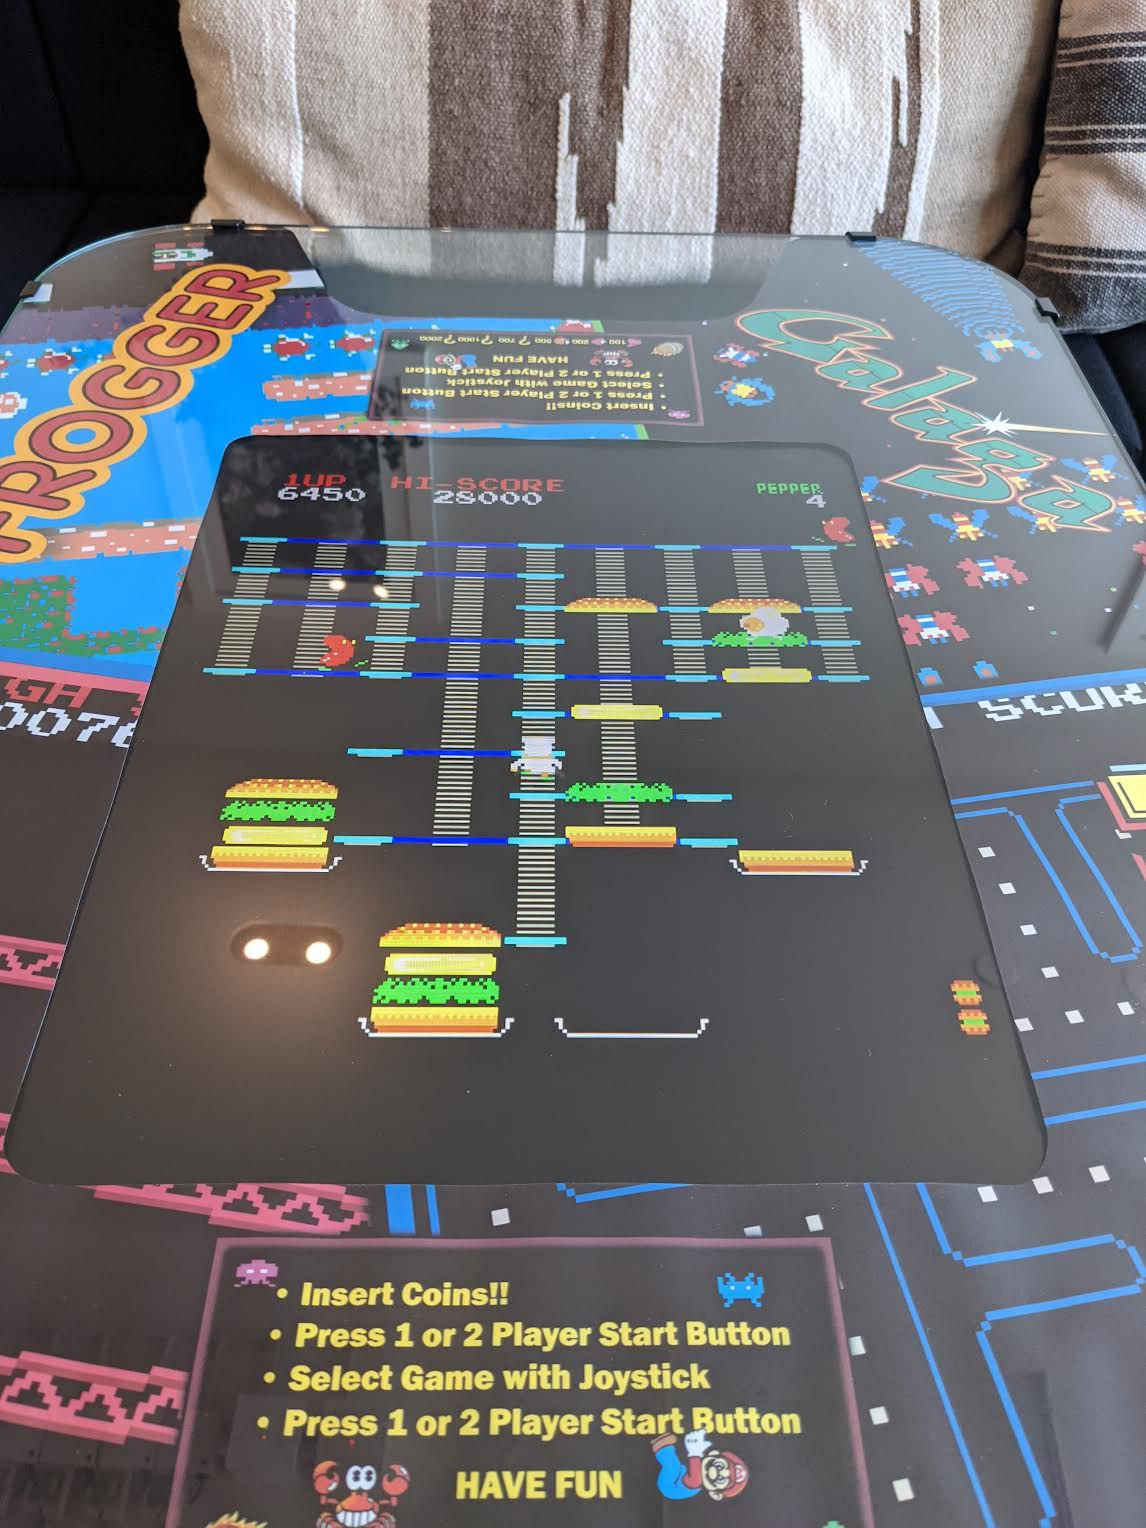 A picture of the BurgerTime arcade game.